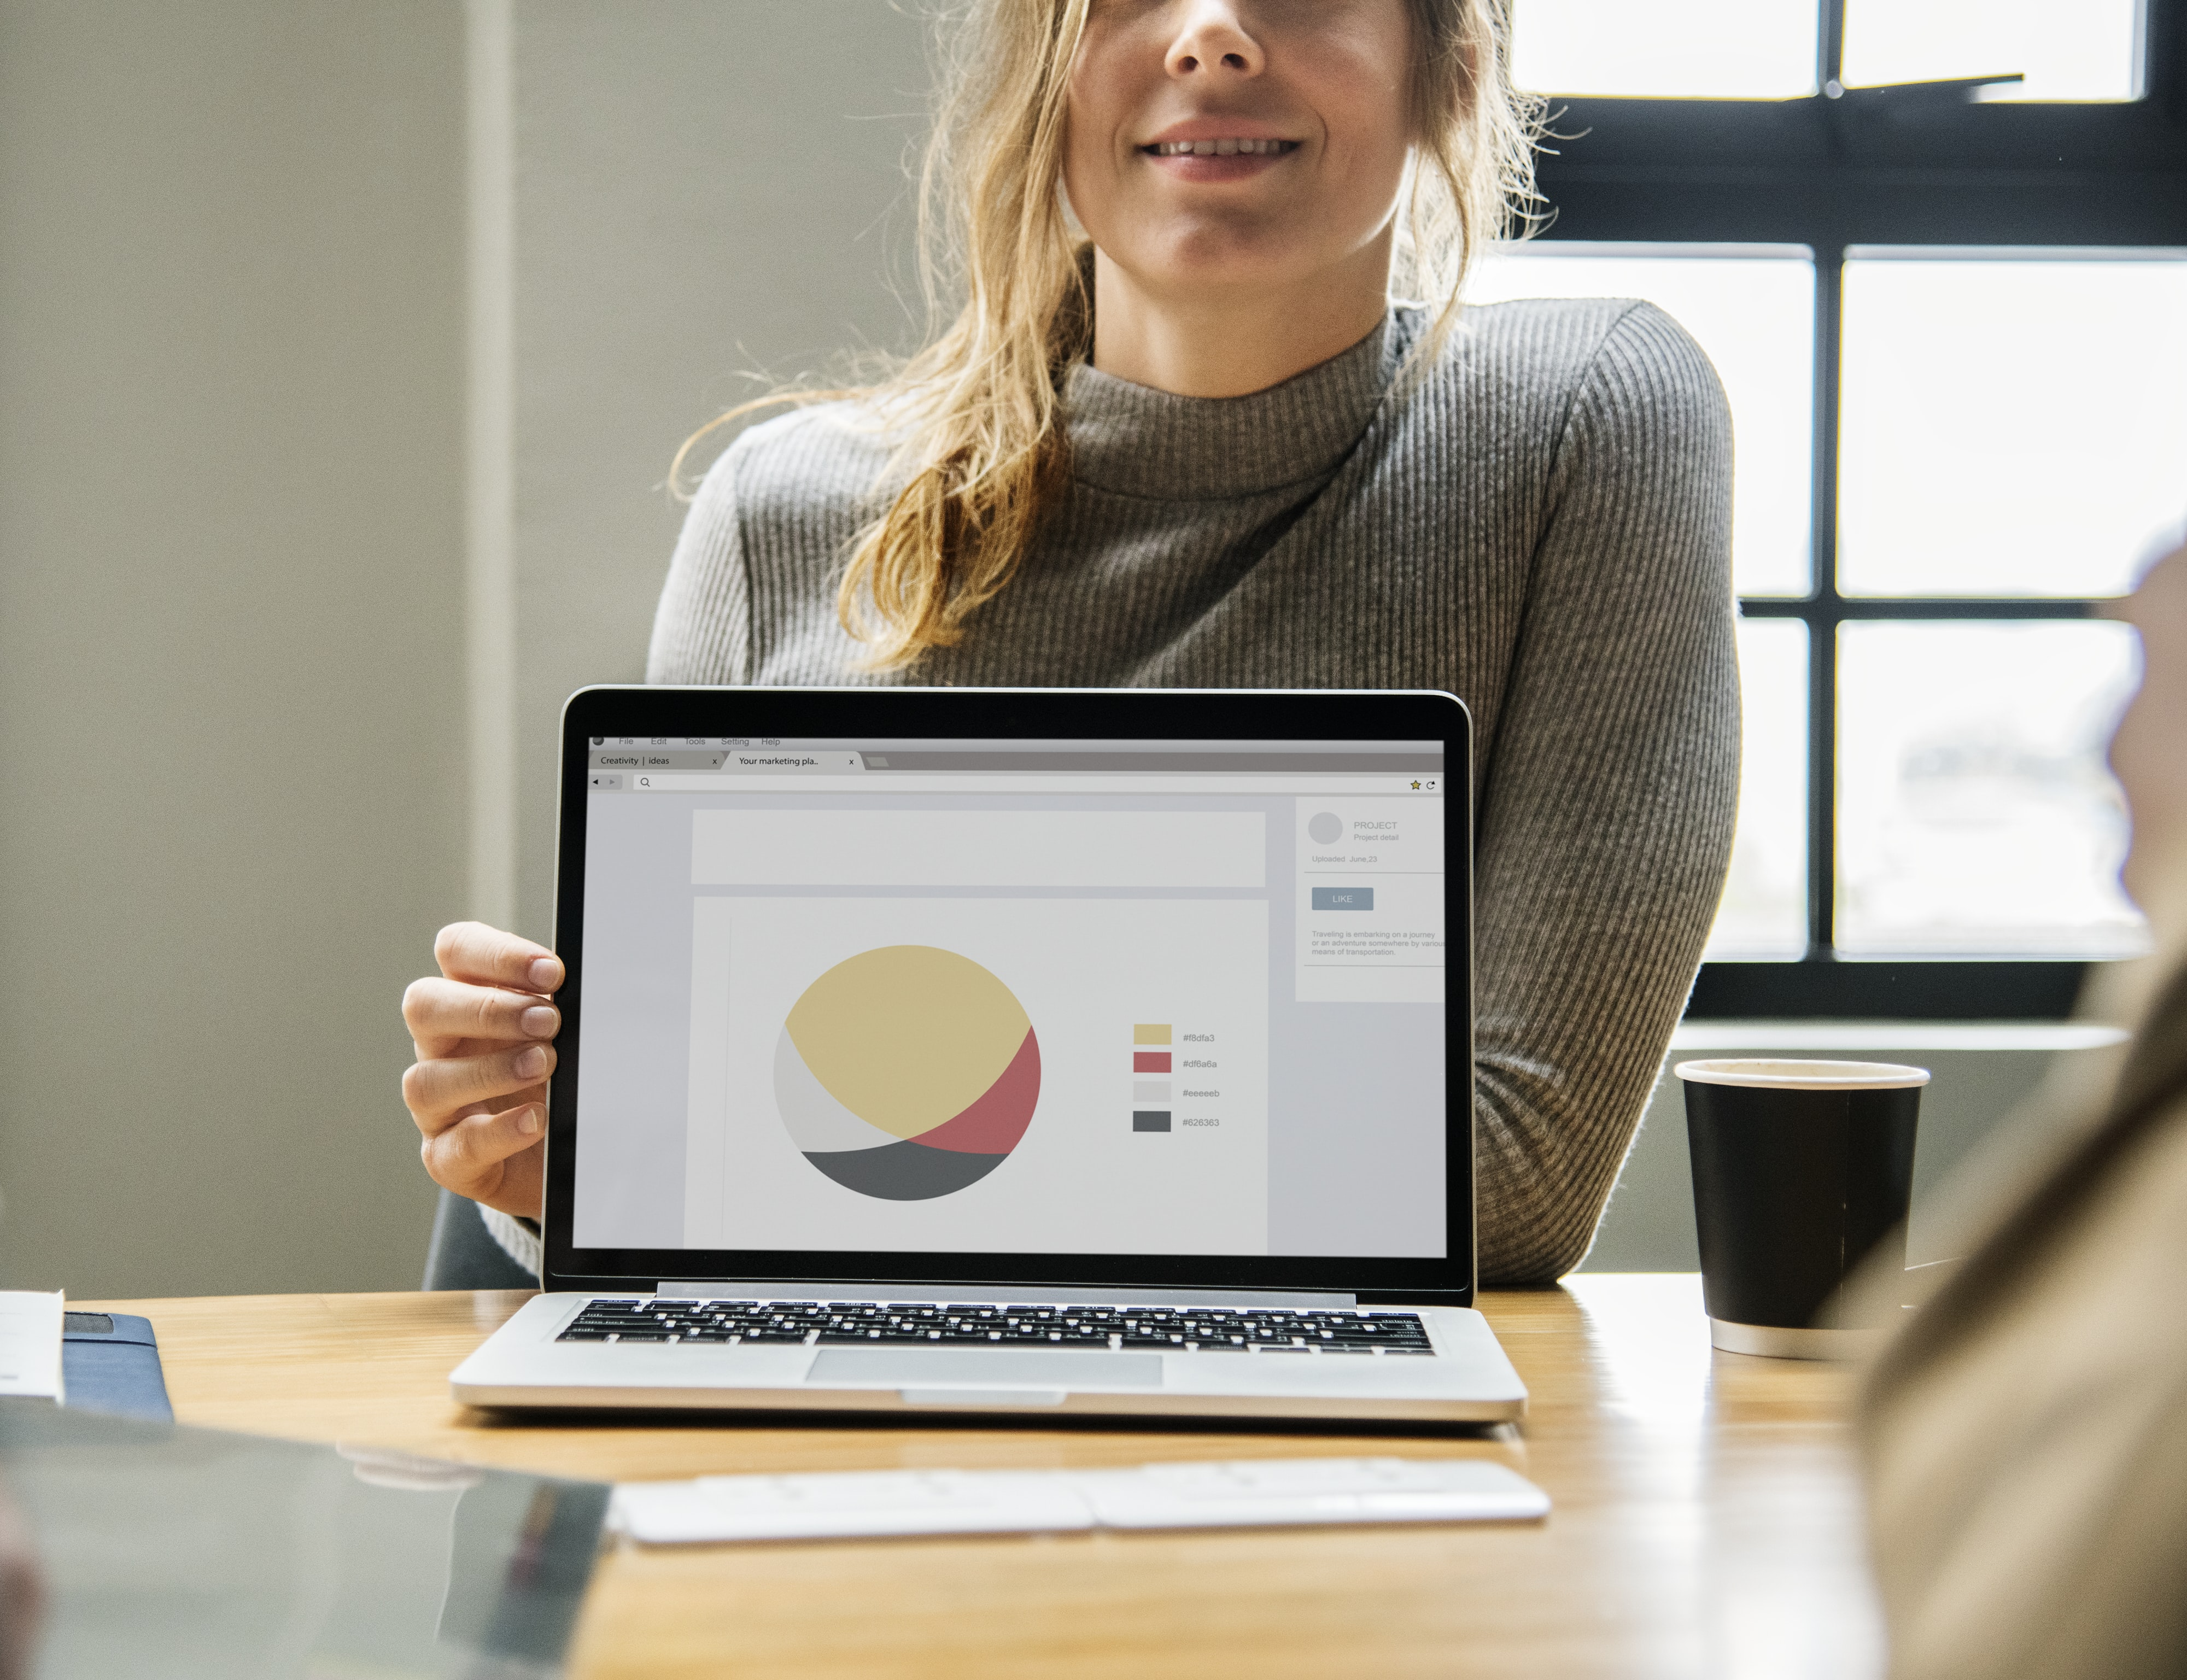 woman showing a presentation in MacBook Pro